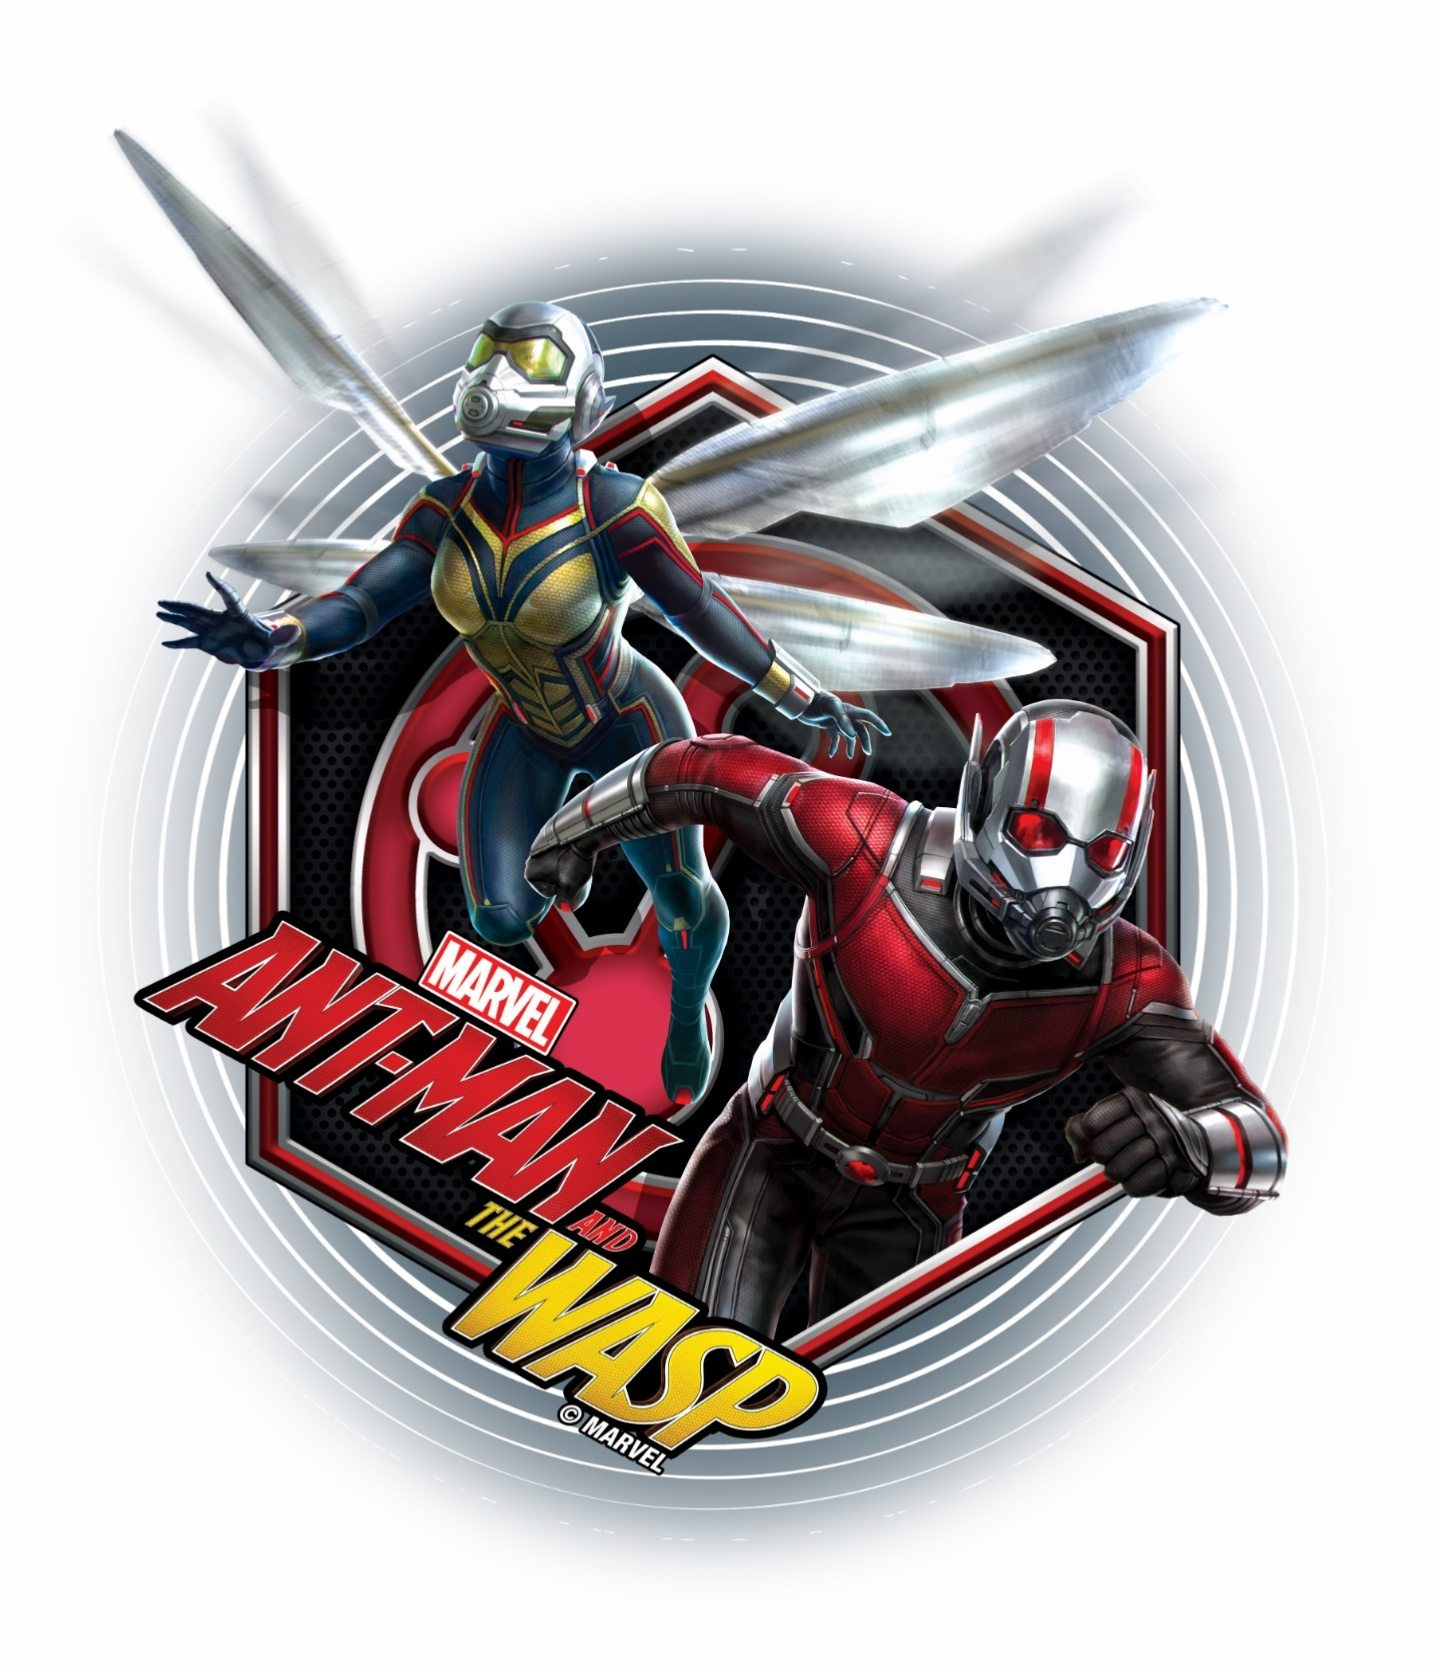 Ant Man And The Wasp Movie Promo Posters And Pictures Teaser Trailer